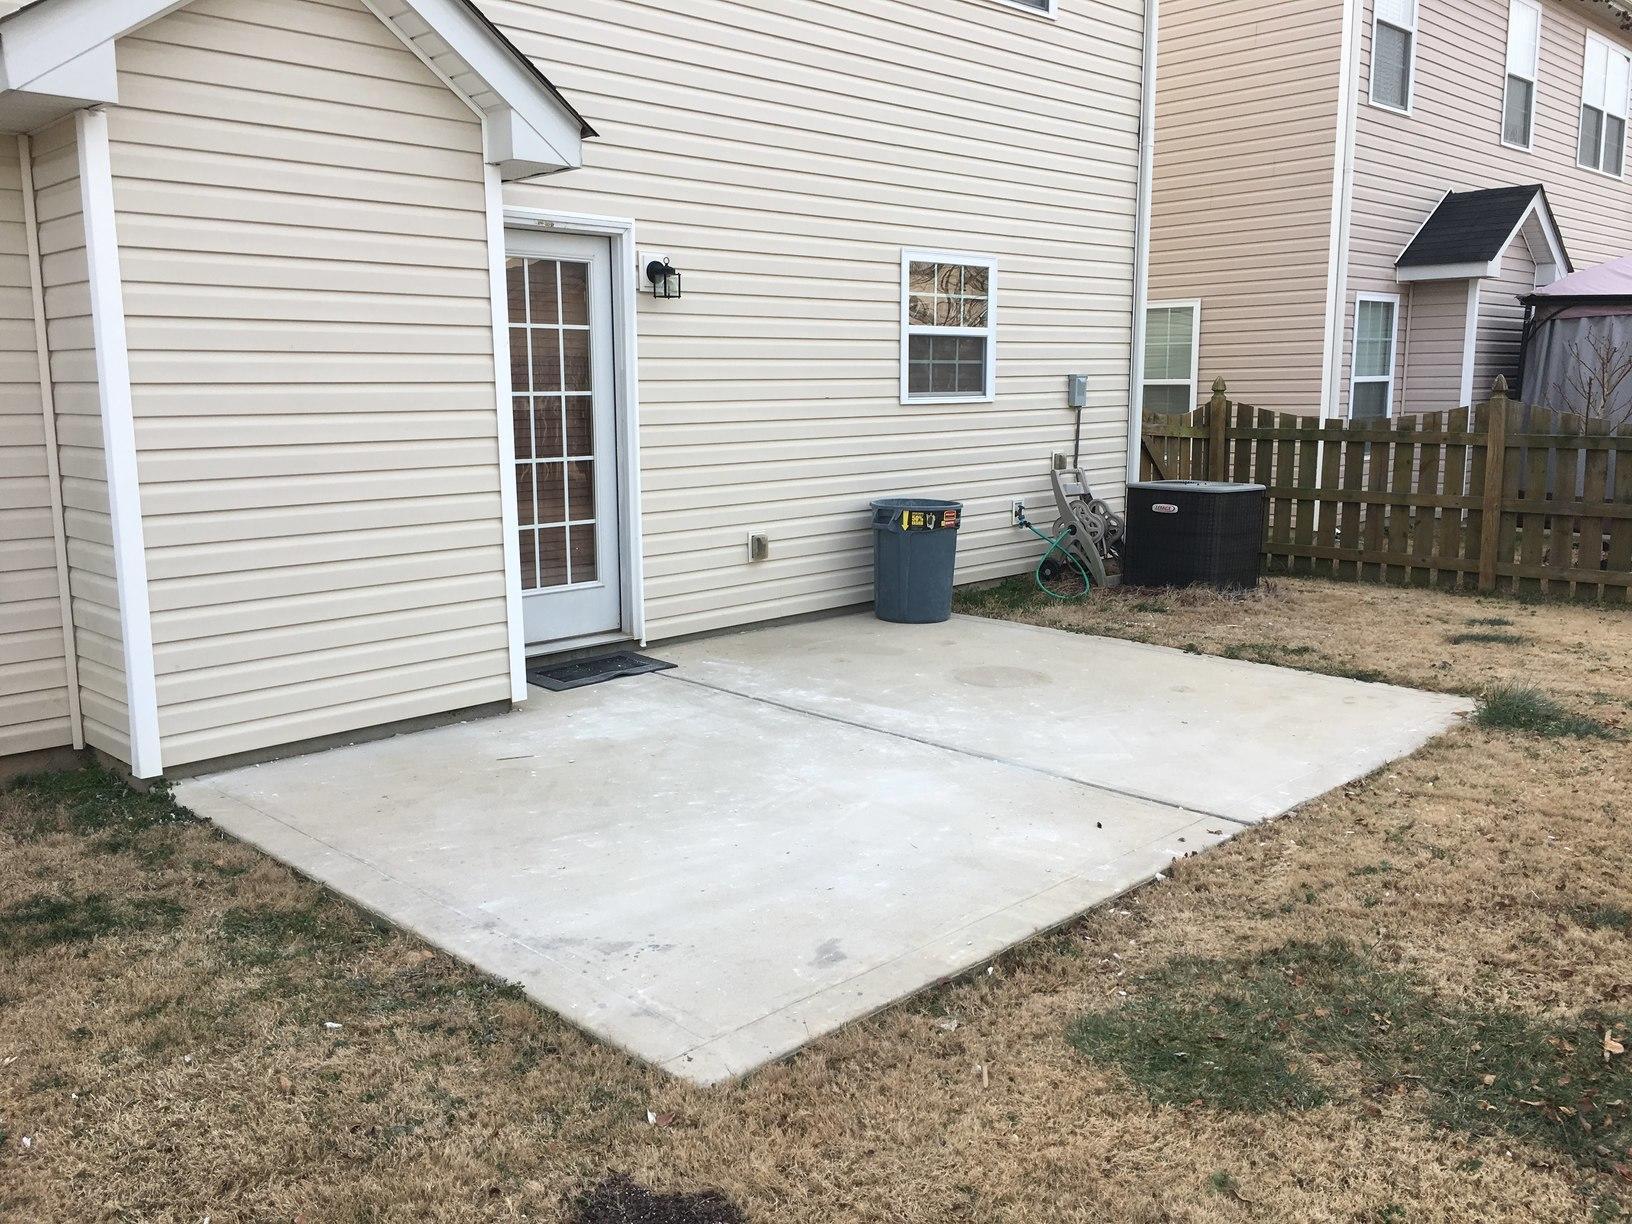 Construction Debris Removal in Matthews, NC - After Photo